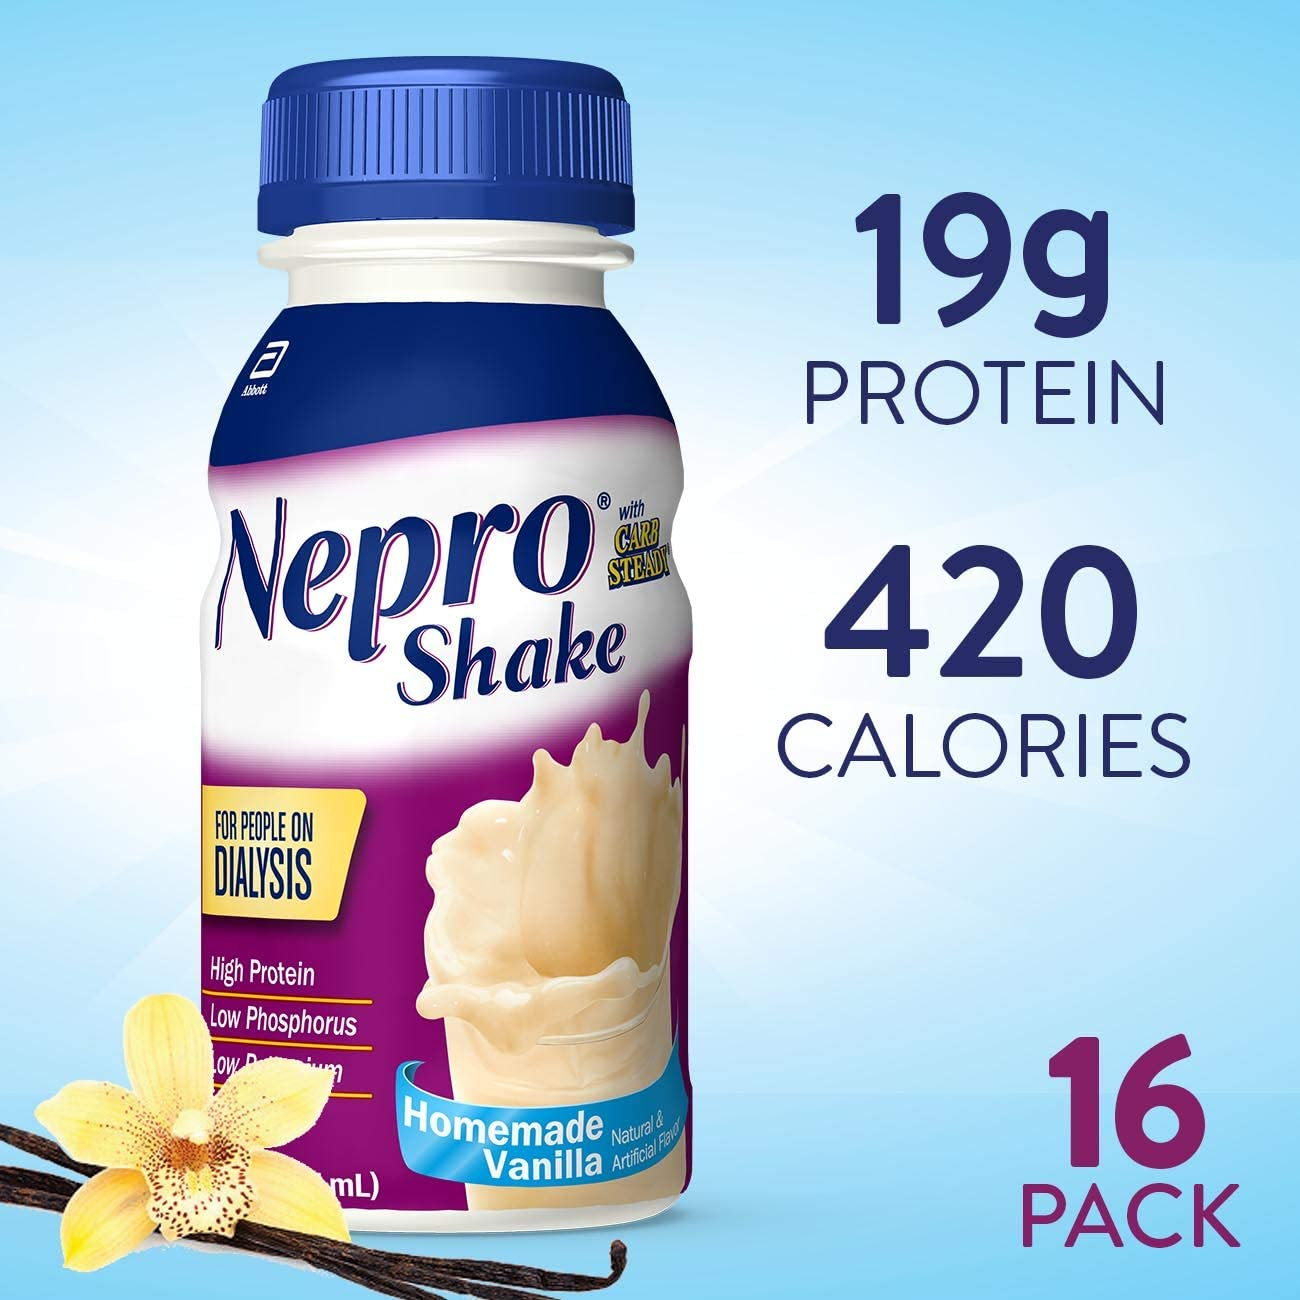 Nepro Nutrition Shake for People on Dialysis, with 19 Grams of Protein, 420 Calories, Vanilla, 8 fl oz, 16 Count 716BWX2B3YfL